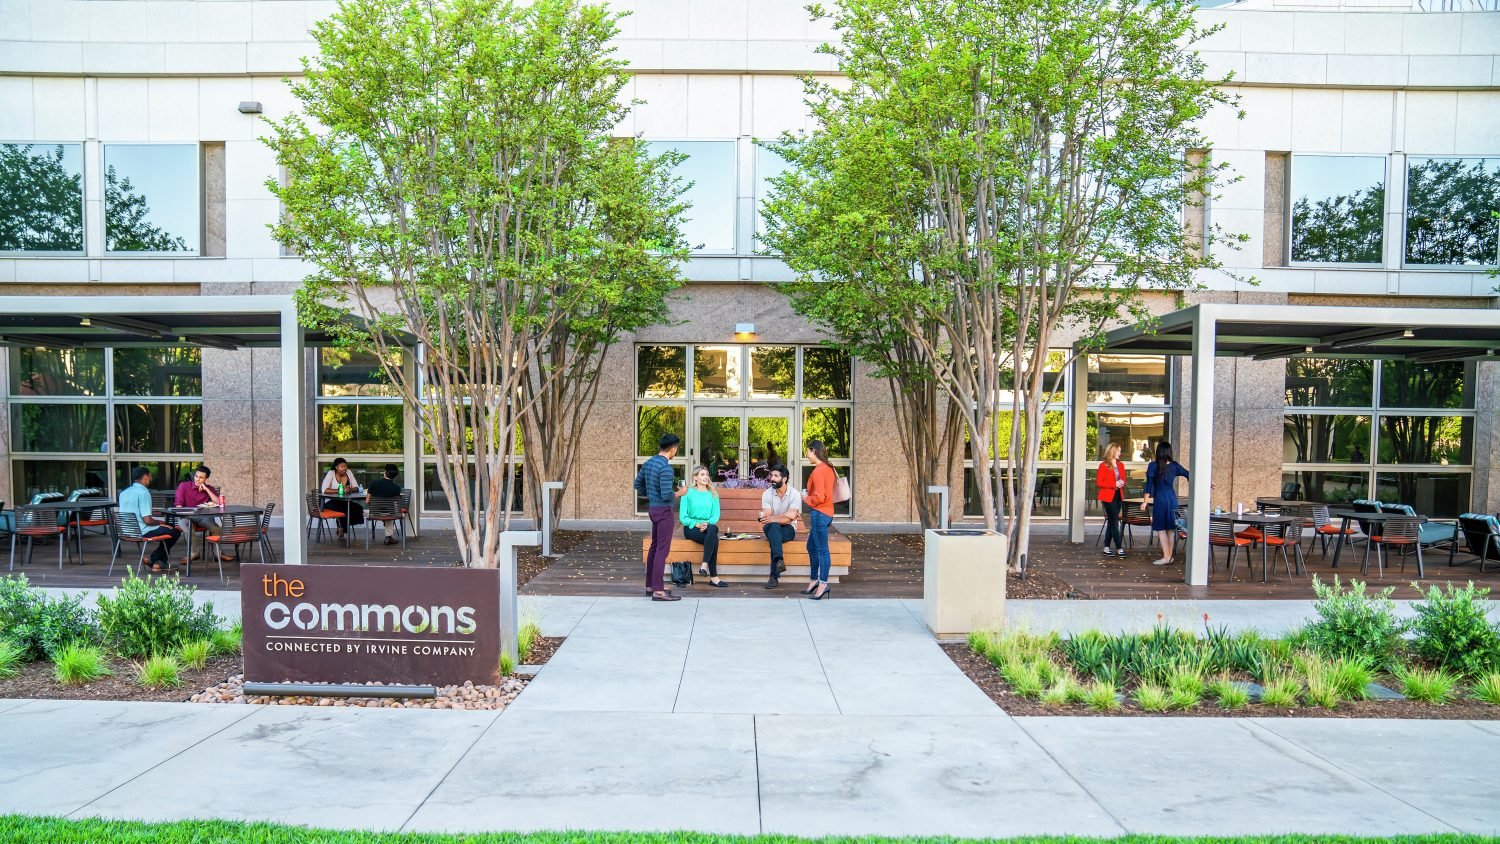 Lifestyle photography of The Commons at 100 Spectrum Center Drive in Irvine, CA